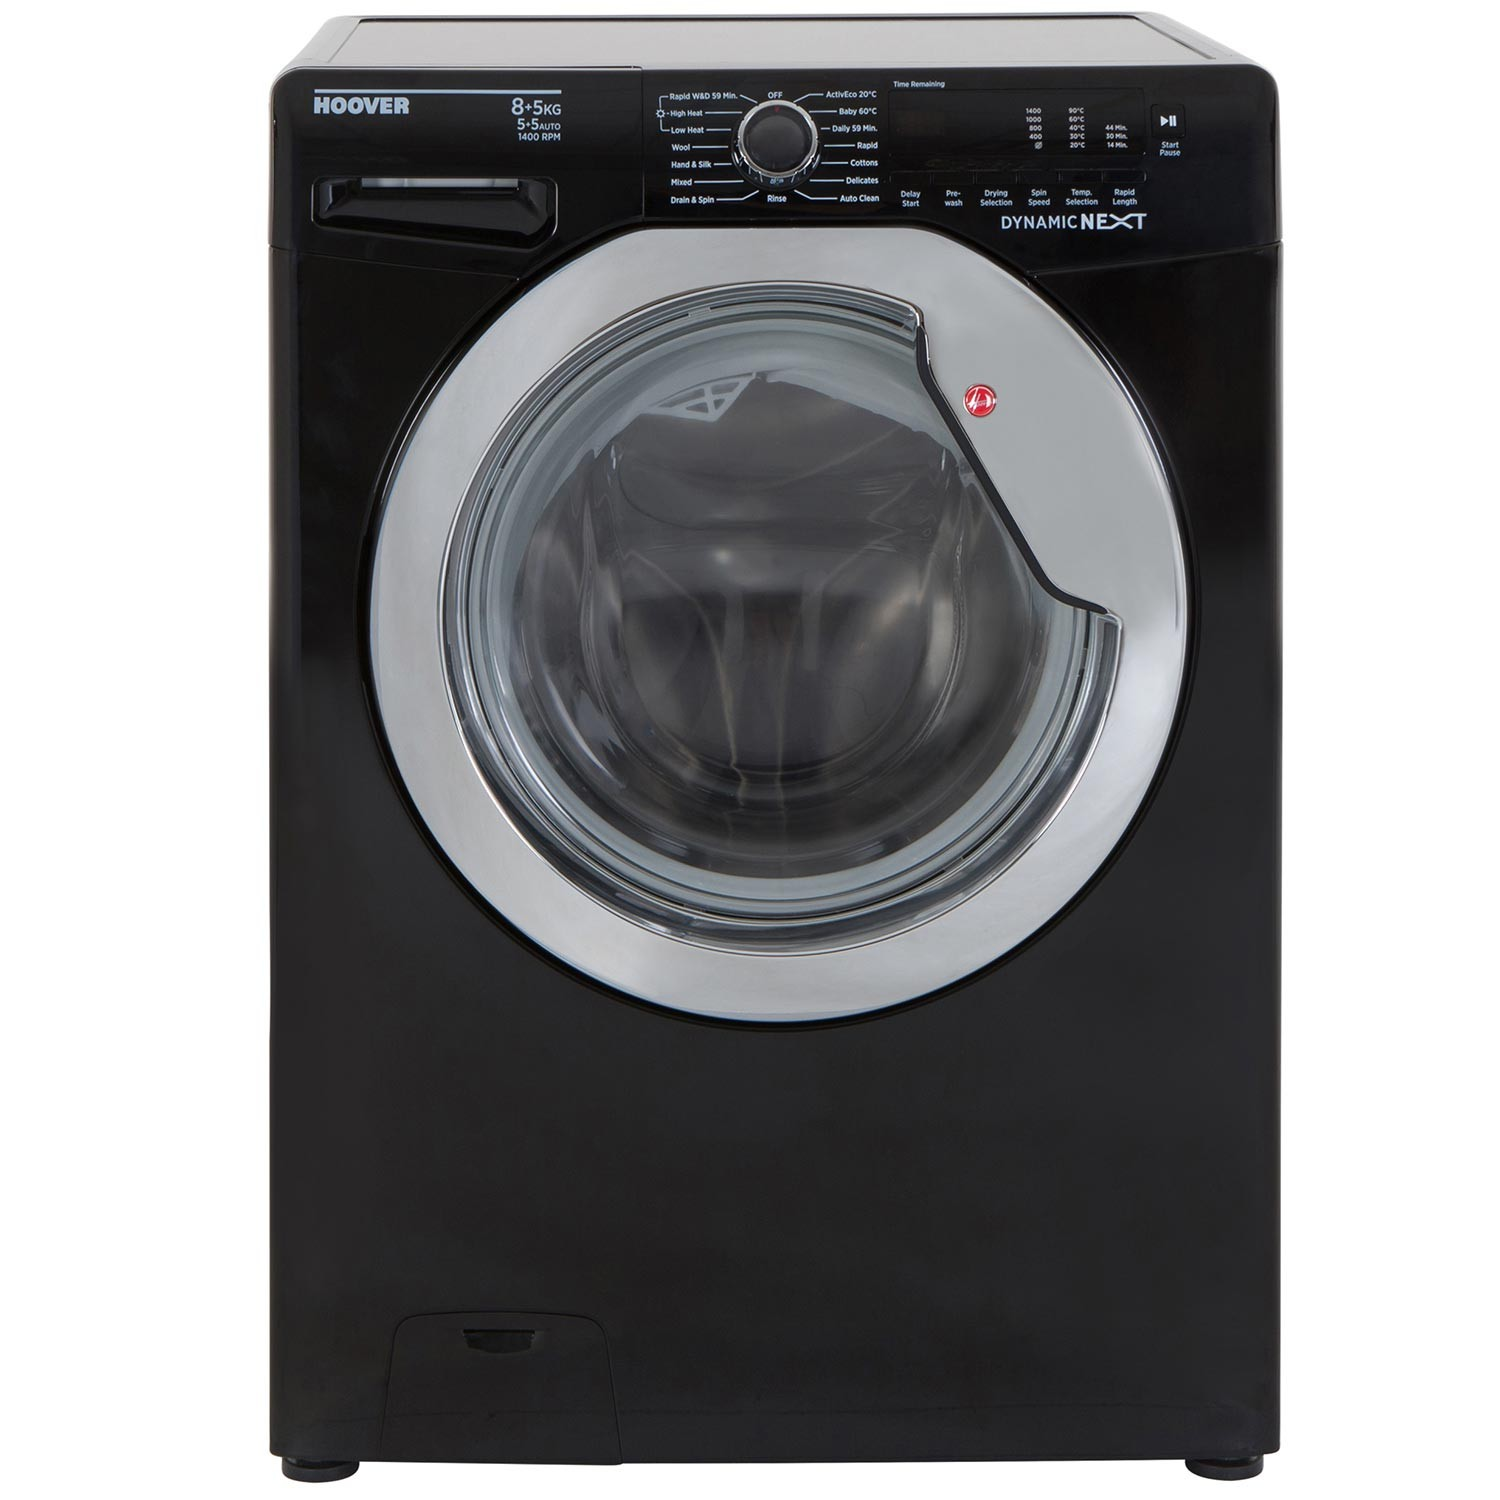 Hoover Dynamic Next WDXC C4851B Front-Loading Electric Washer/Dryer - 8 kg/5 kg